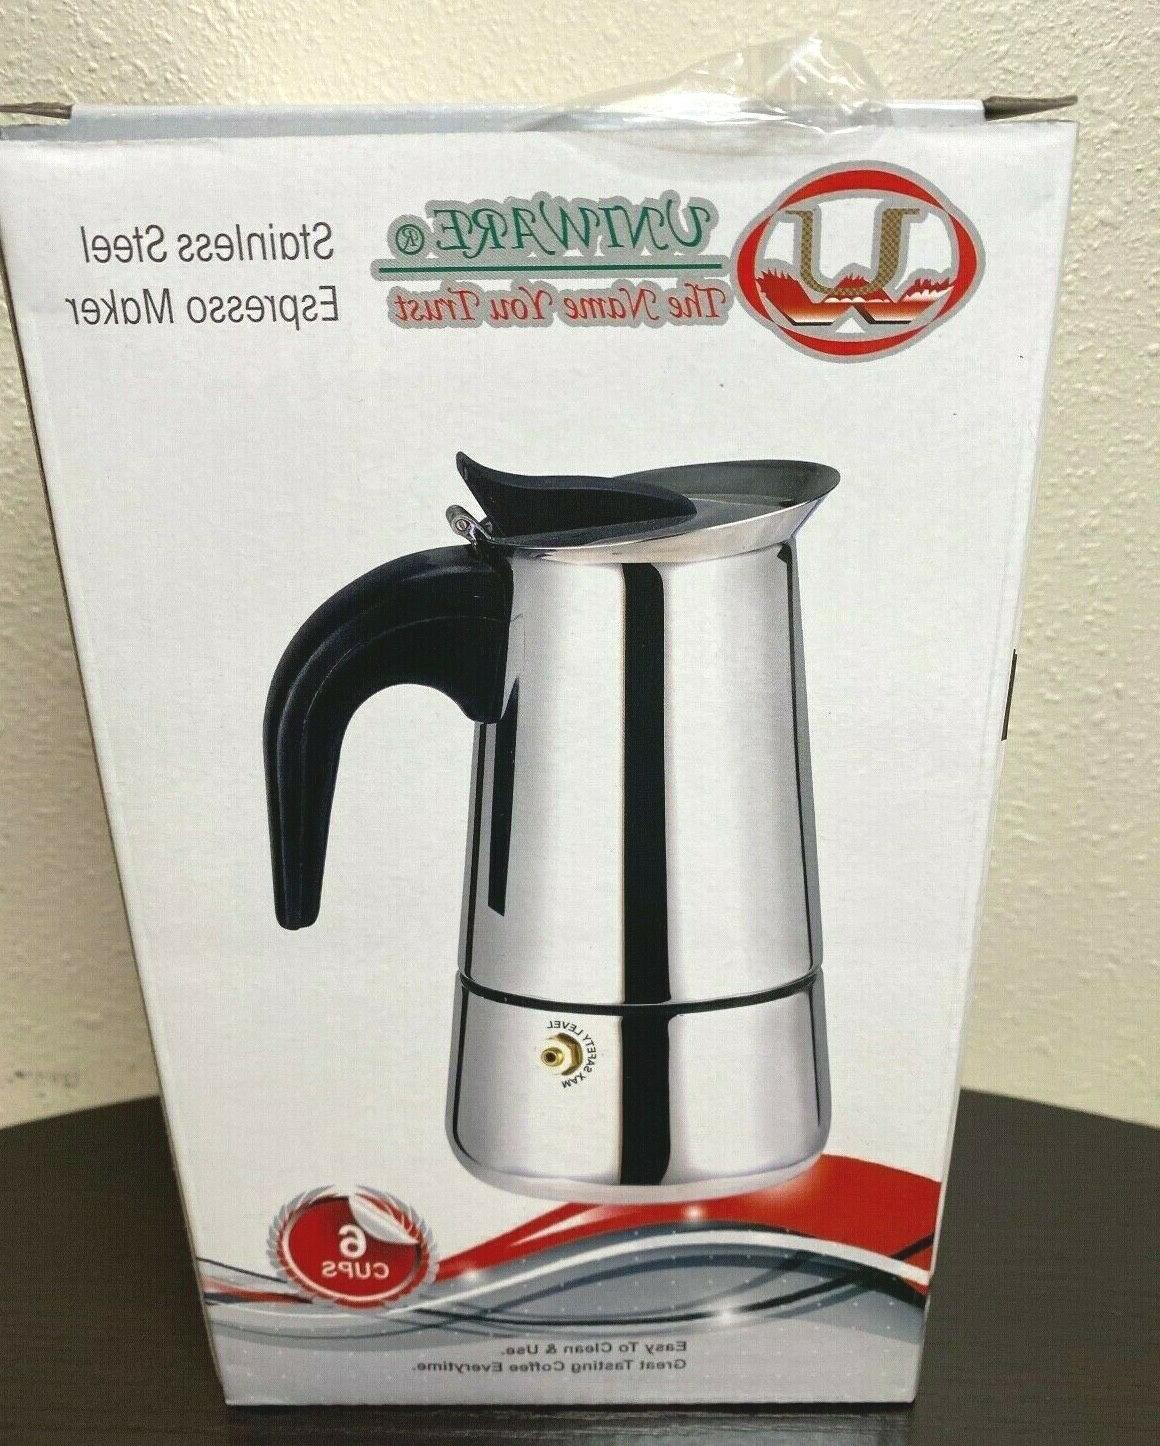 stainless steel espresso maker 6 cup